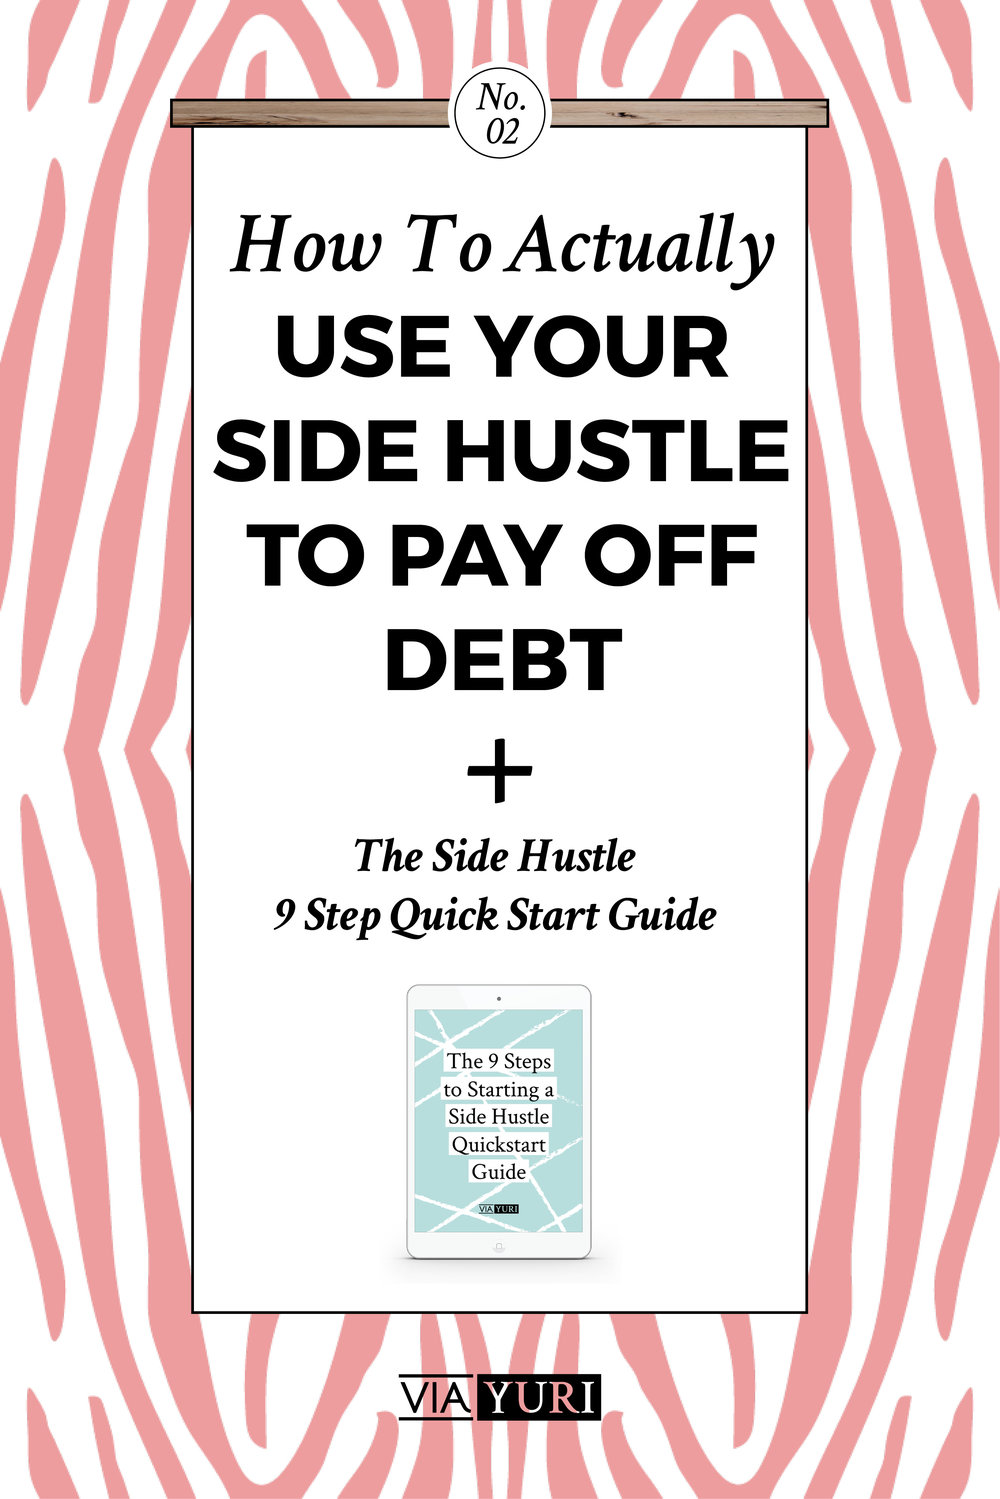 How To Use a Side Hustle to Pay Off Debt - AKA - An In Depth Post Using My Approach: The Power of Small Wins